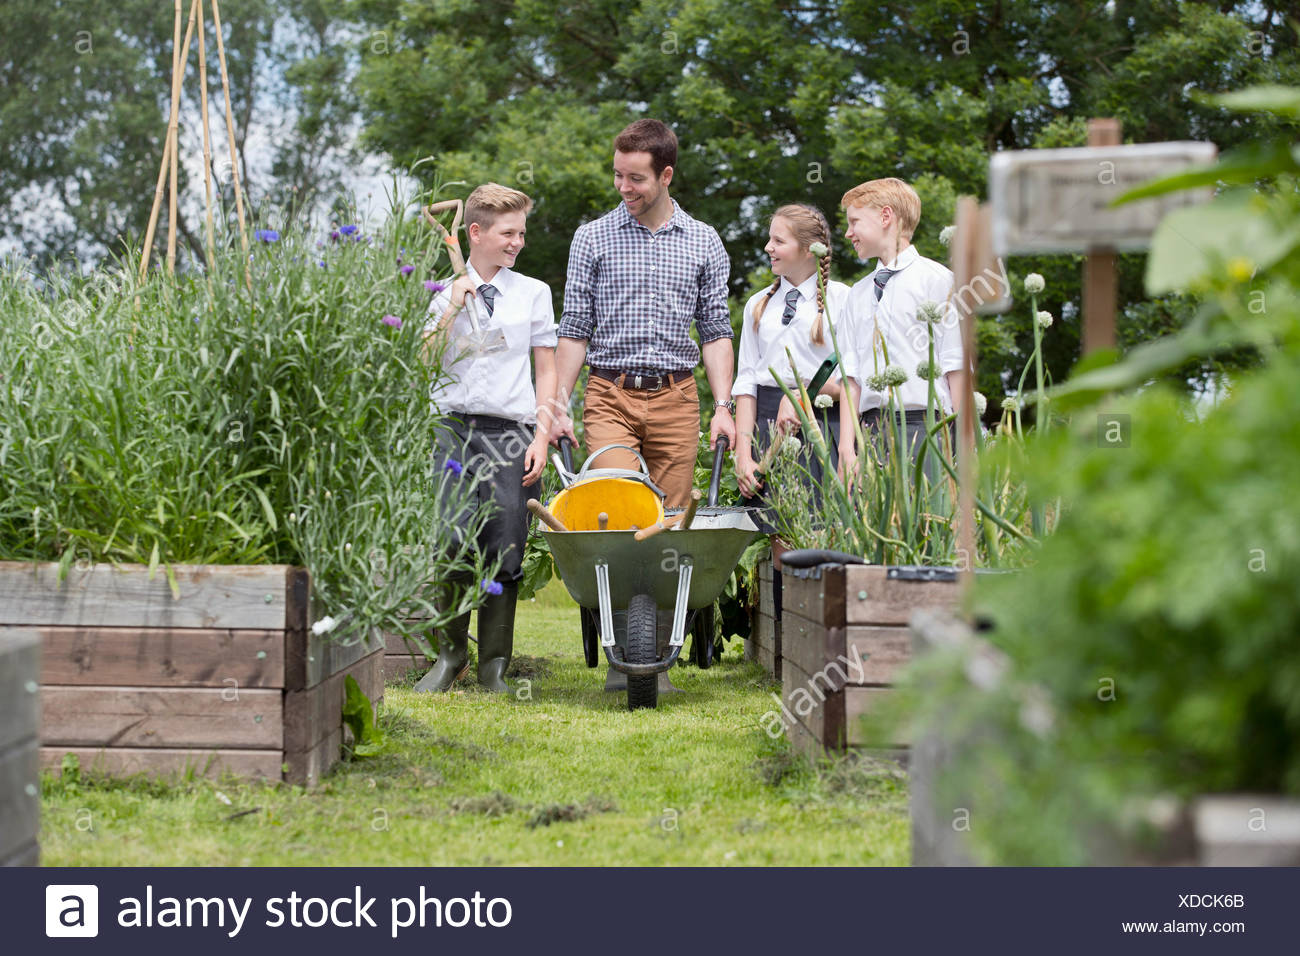 Teacher and middle school students with wheelbarrow learning gardening in vegetable garden - Stock Image